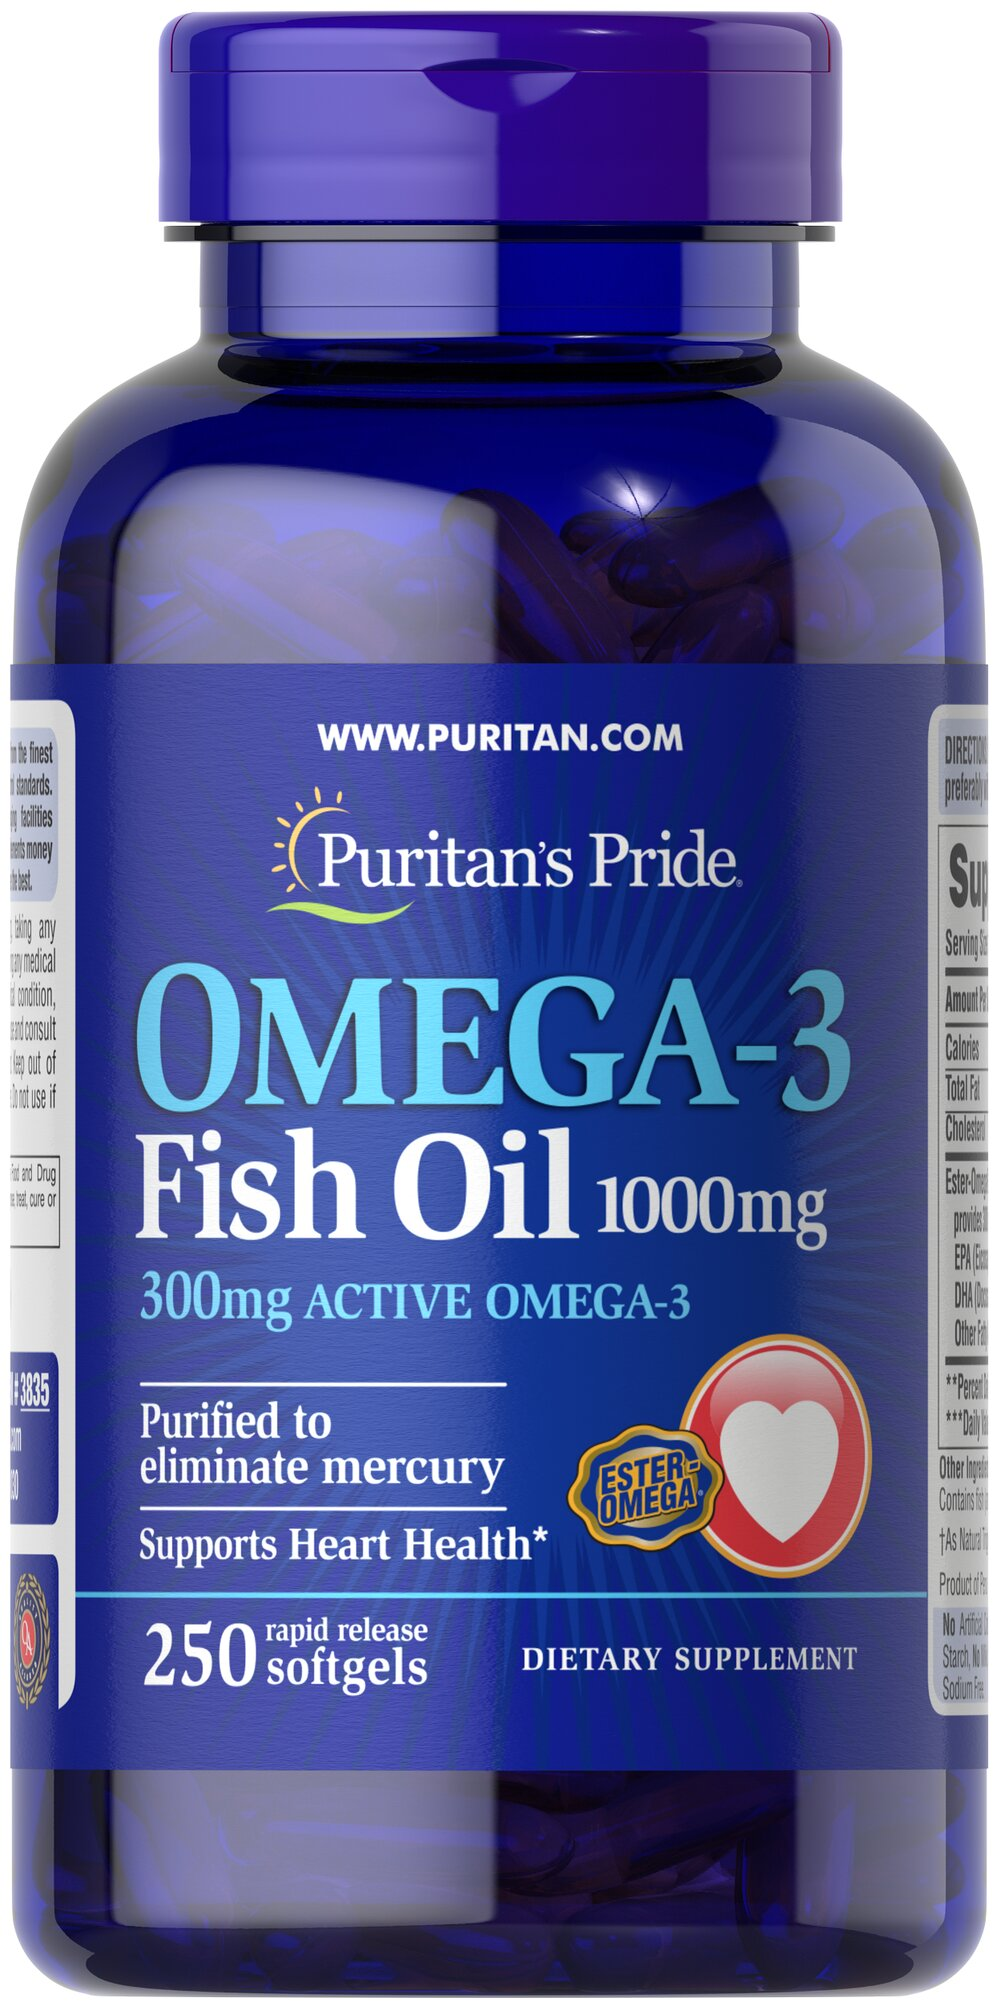 Omega 3 fish oil 1000 mg 300 mg active omega 3 250 for Fish omega 3